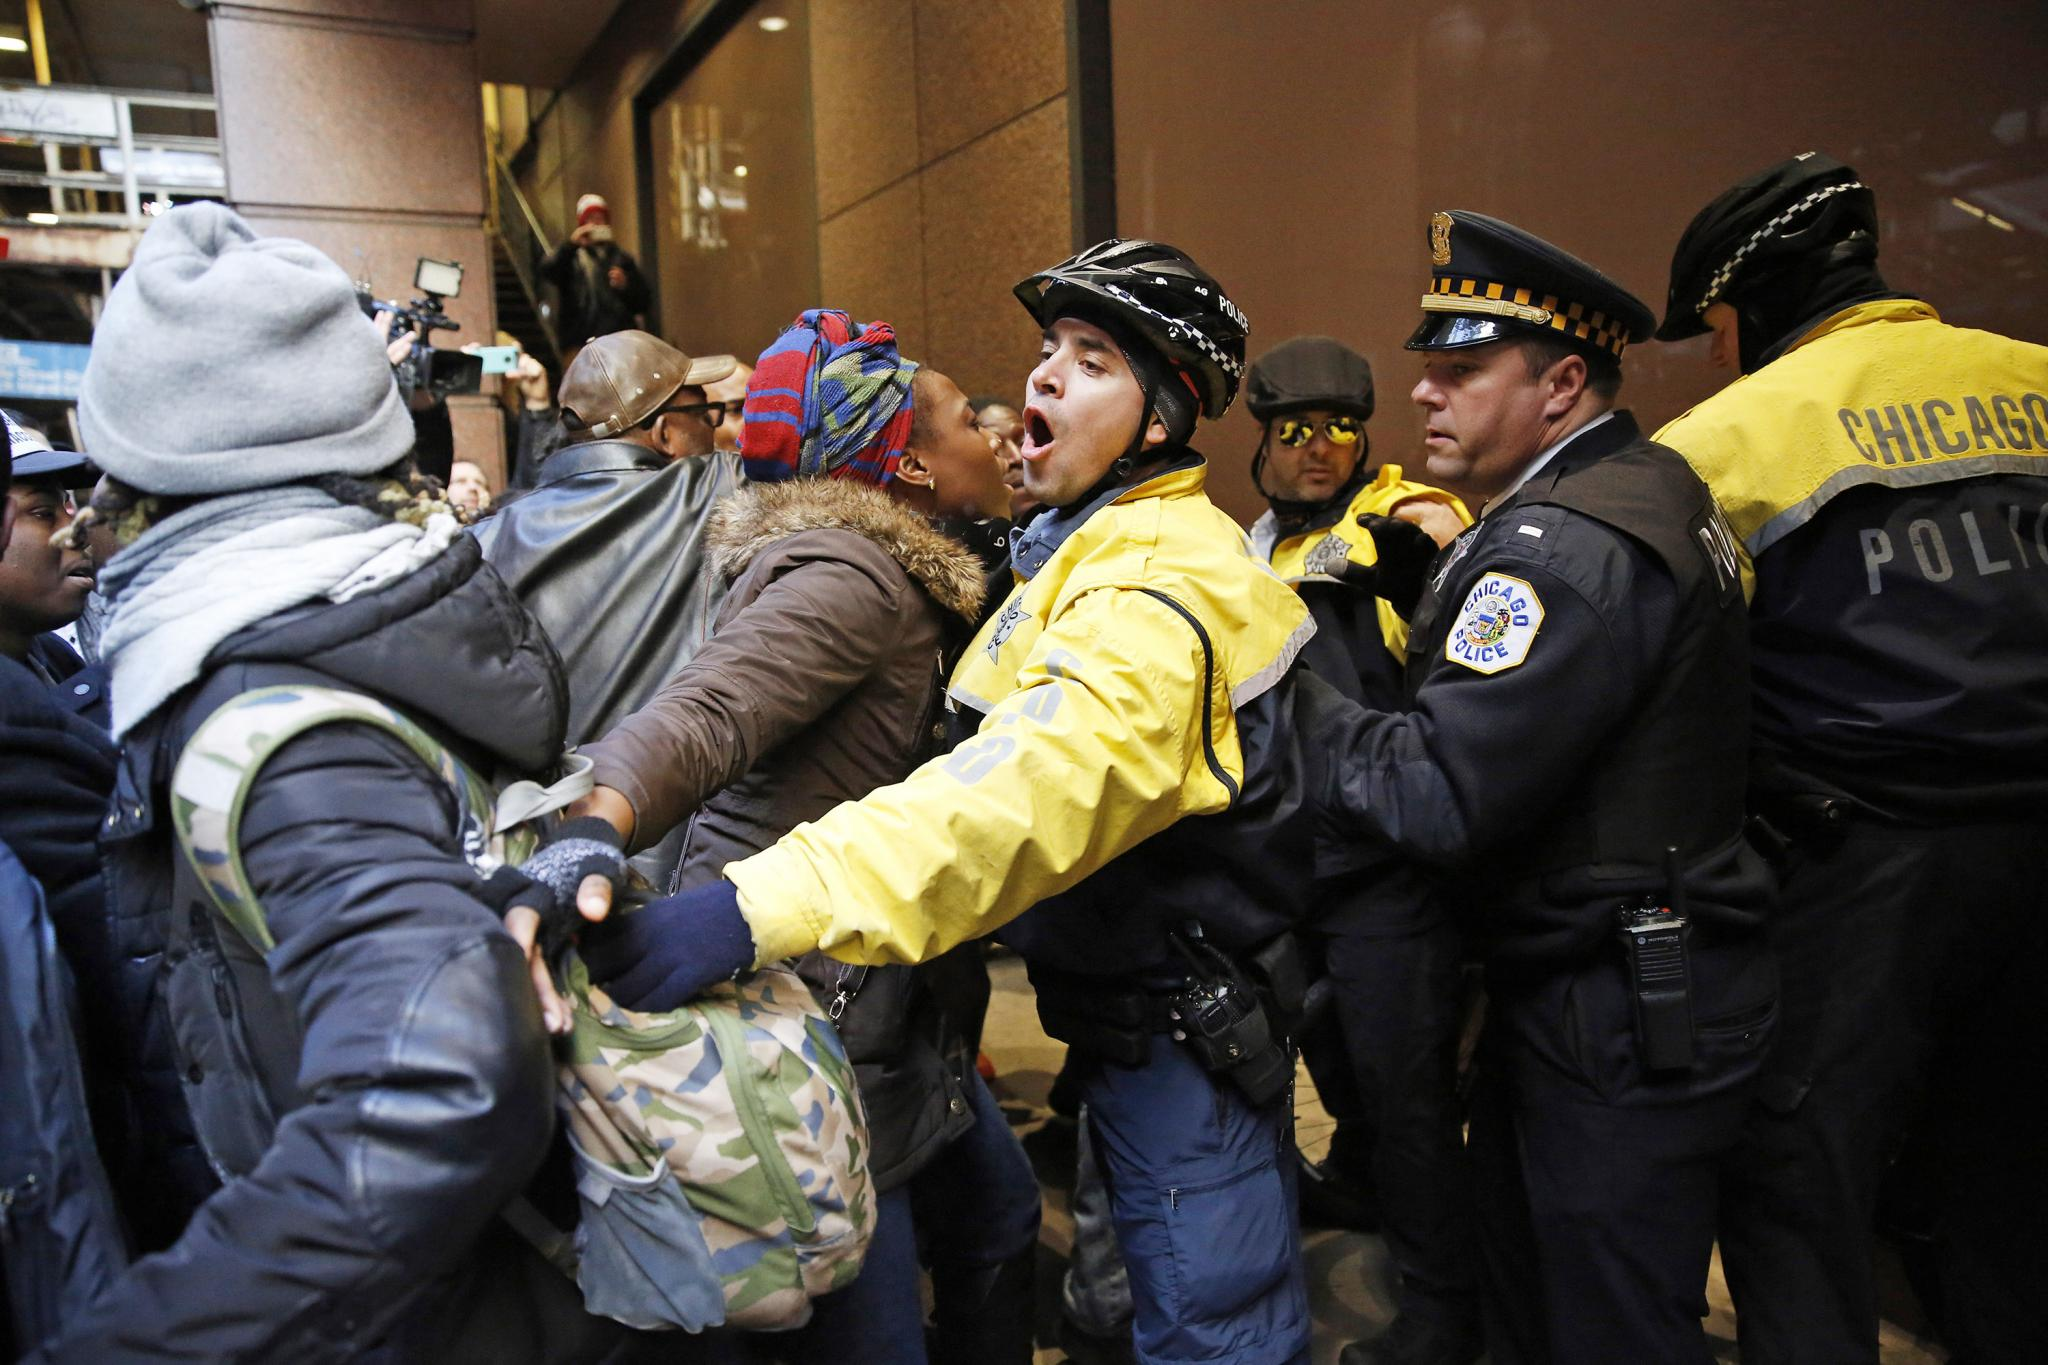 Chicago Police Have No Explanation For Body Cams Failing During Shooting Of Unarmed Black Teen